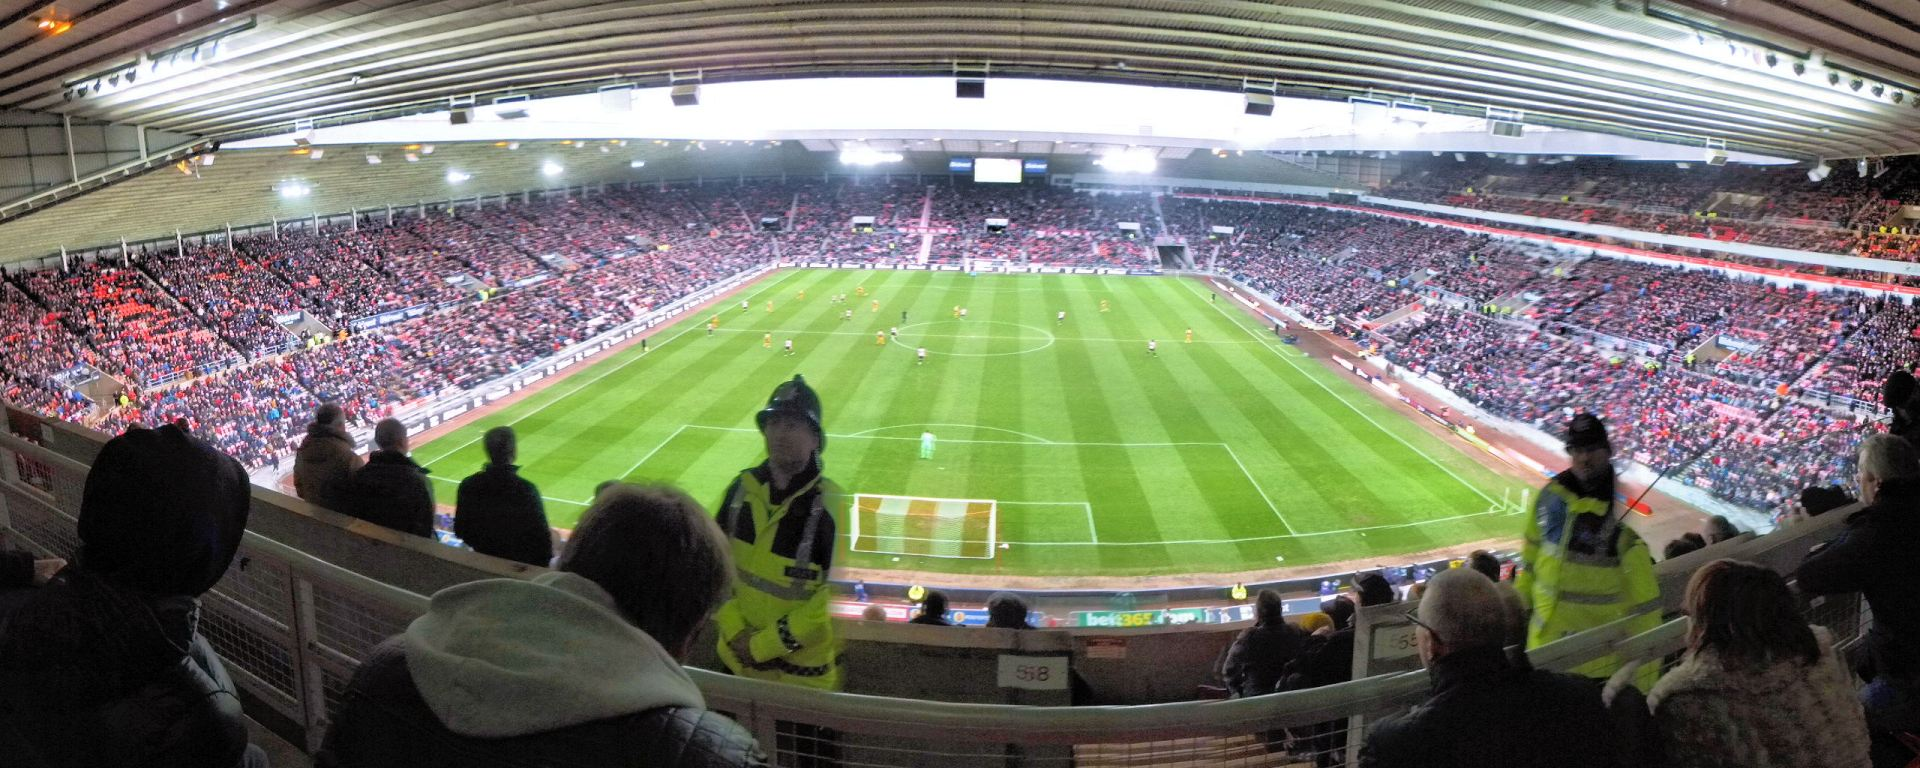 Una panoramica dello Stadium of Light di Sunderland